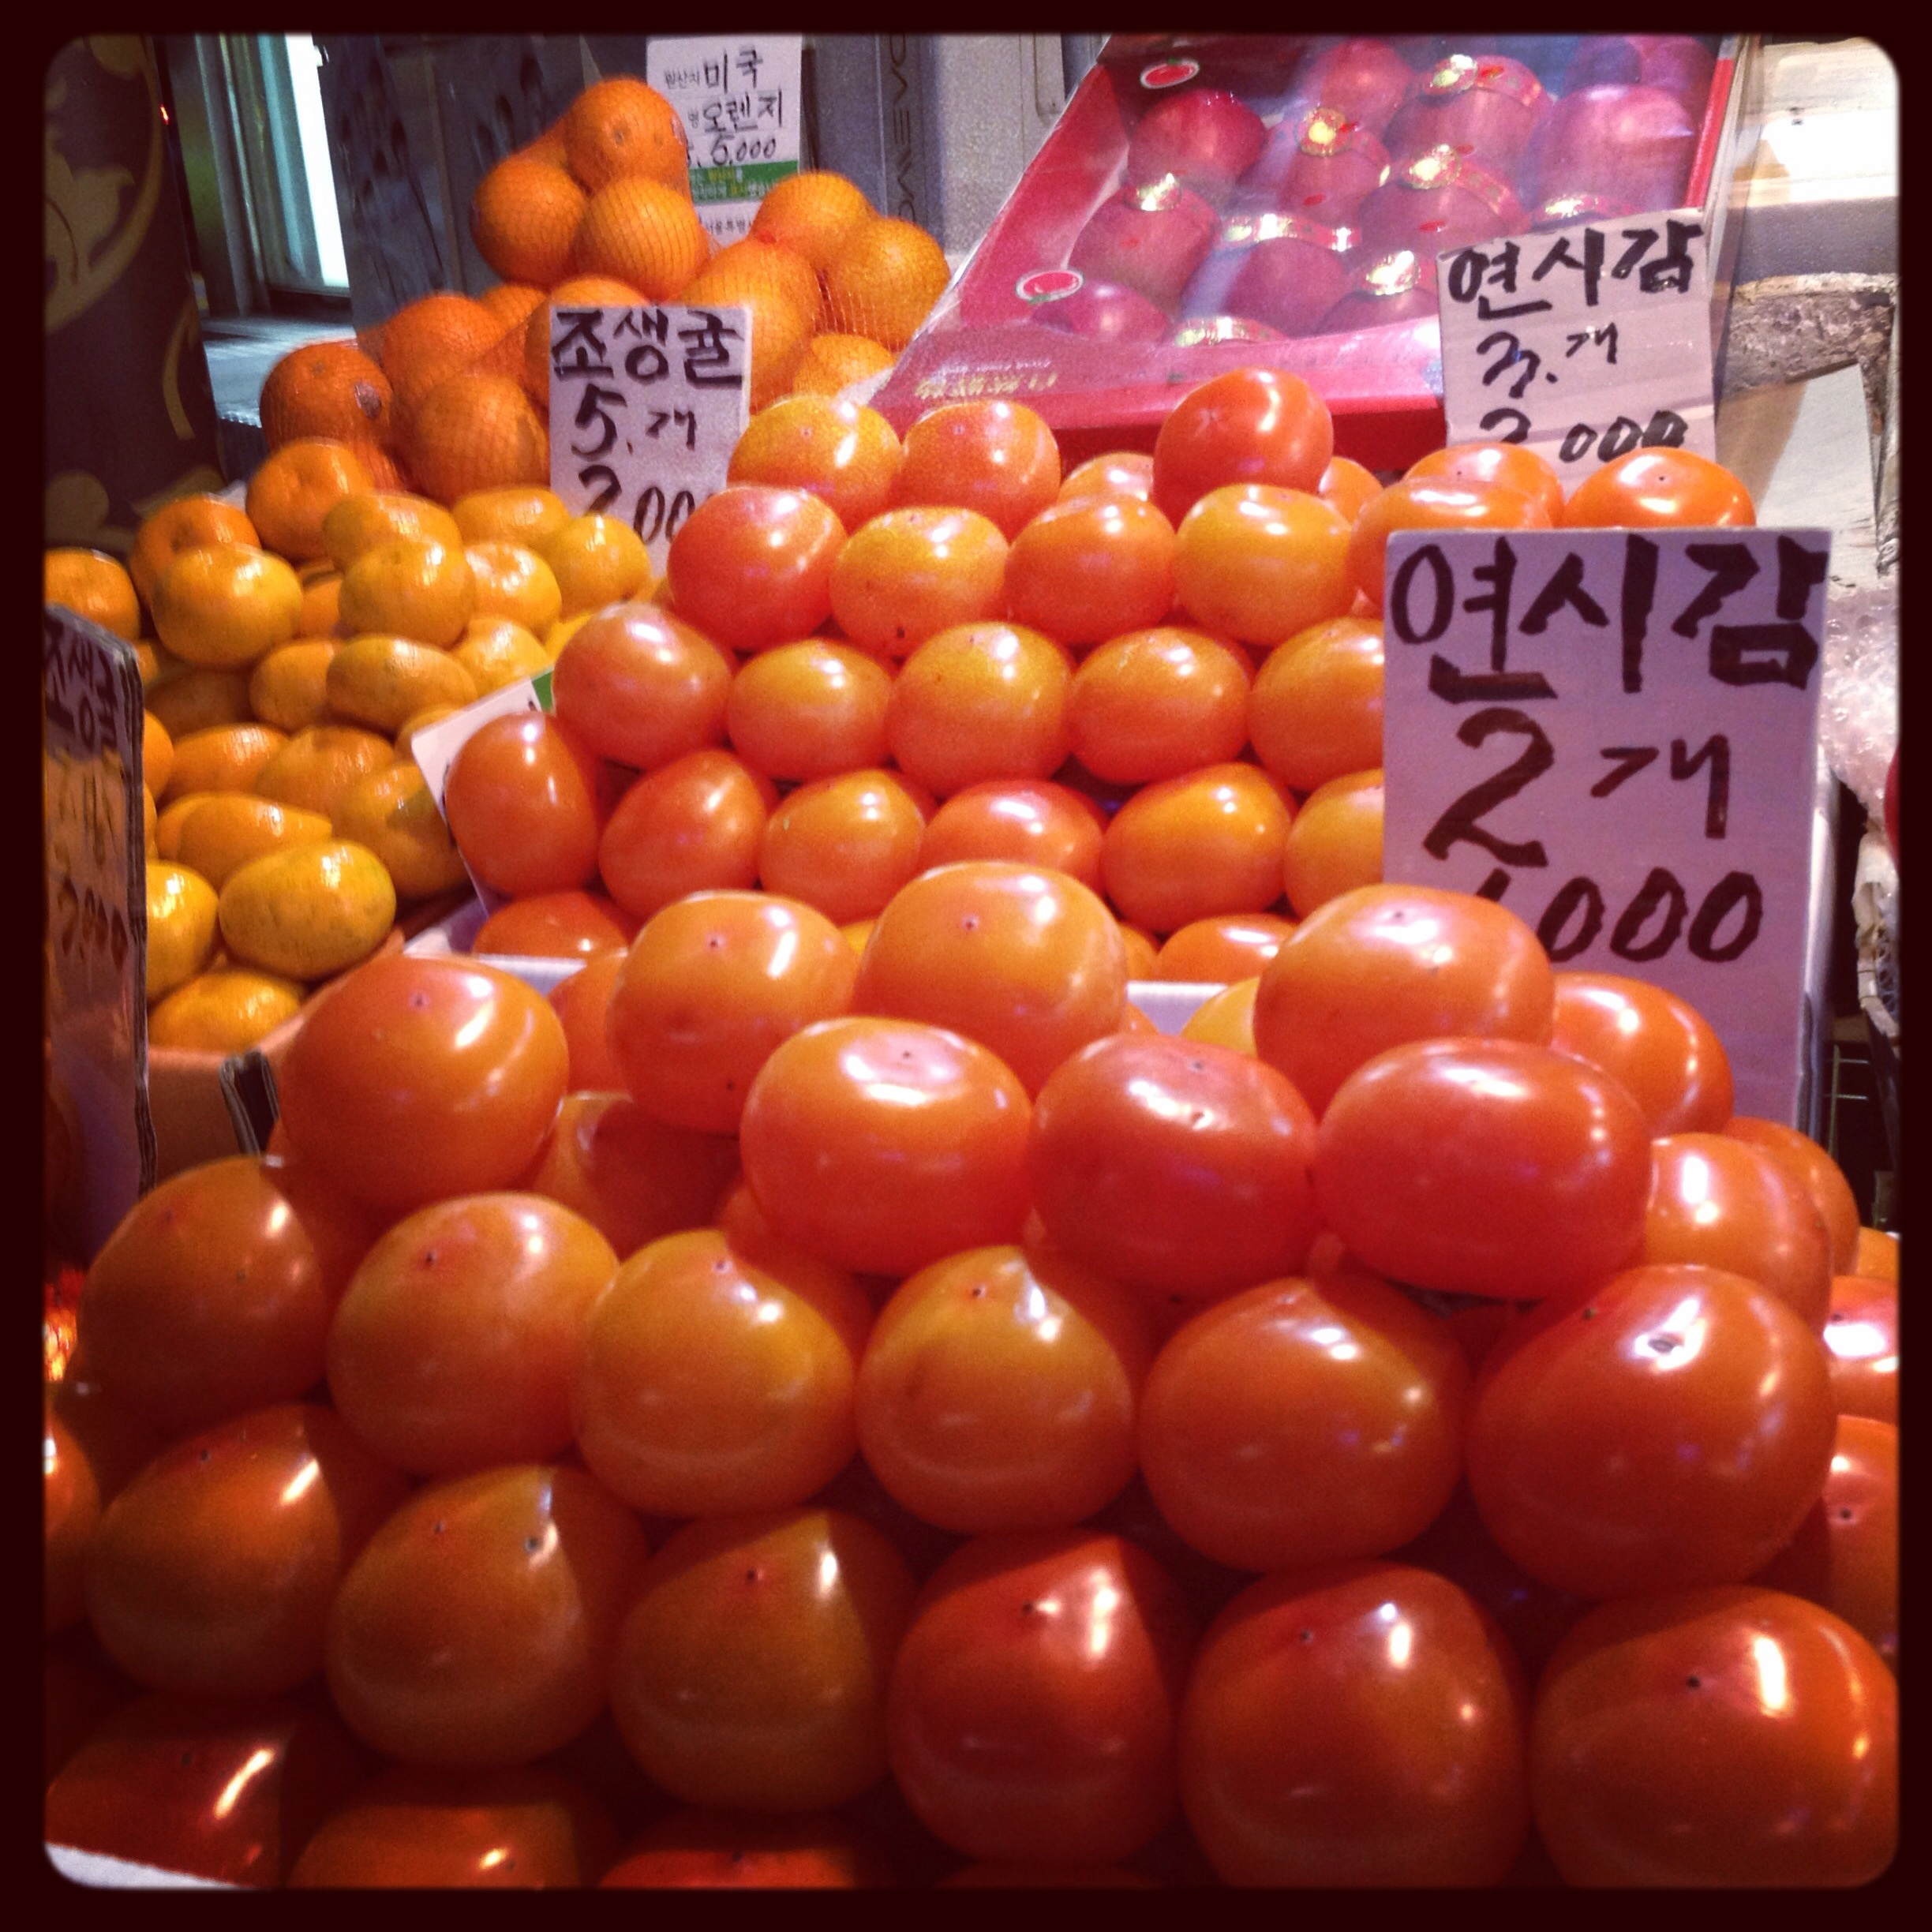 Persimmons for sale on the street fruit carts.